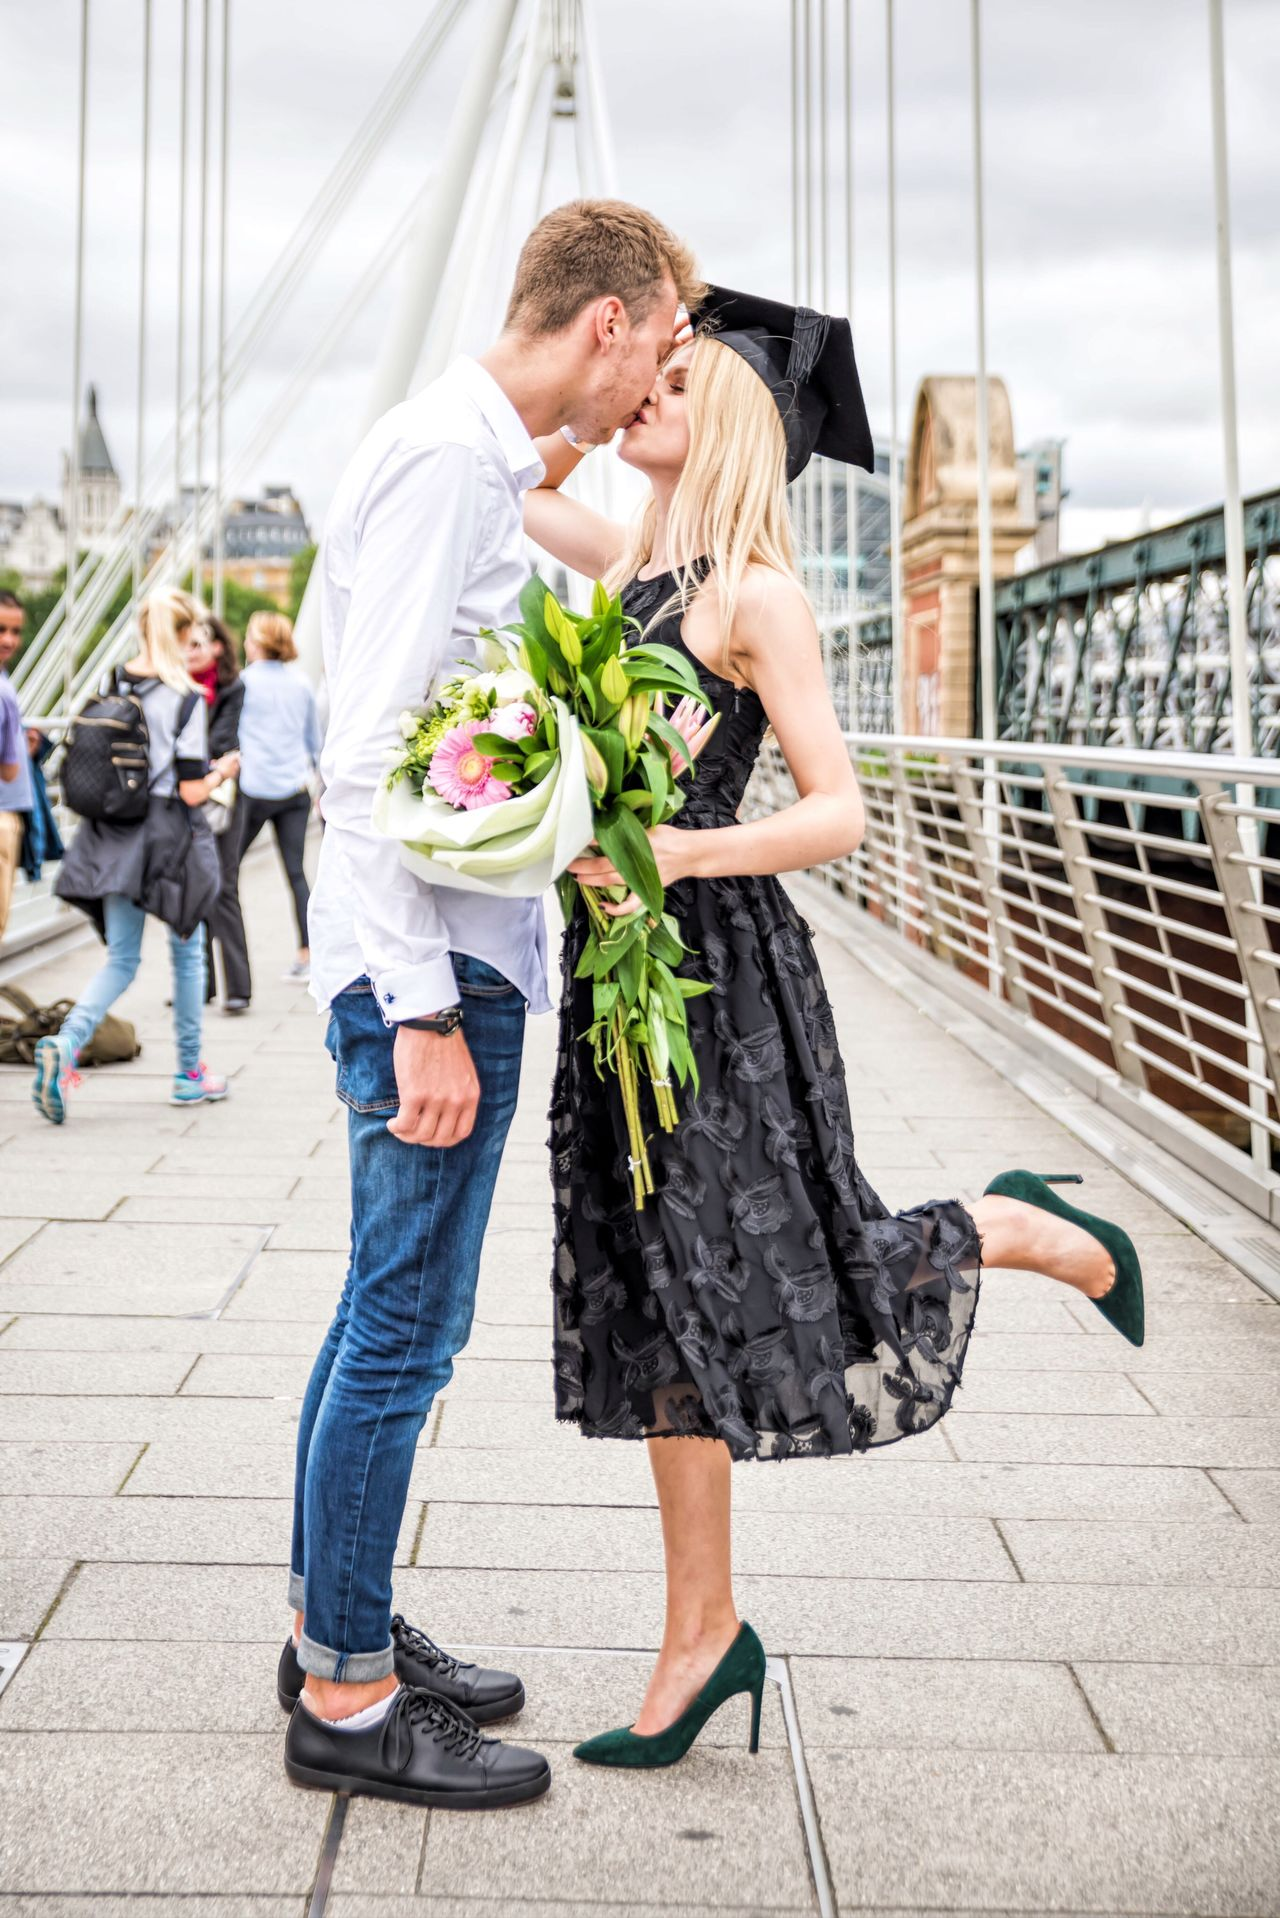 Beautiful stock photos of kuss,  20-24 Years,  Affectionate,  Architecture,  Bouquet